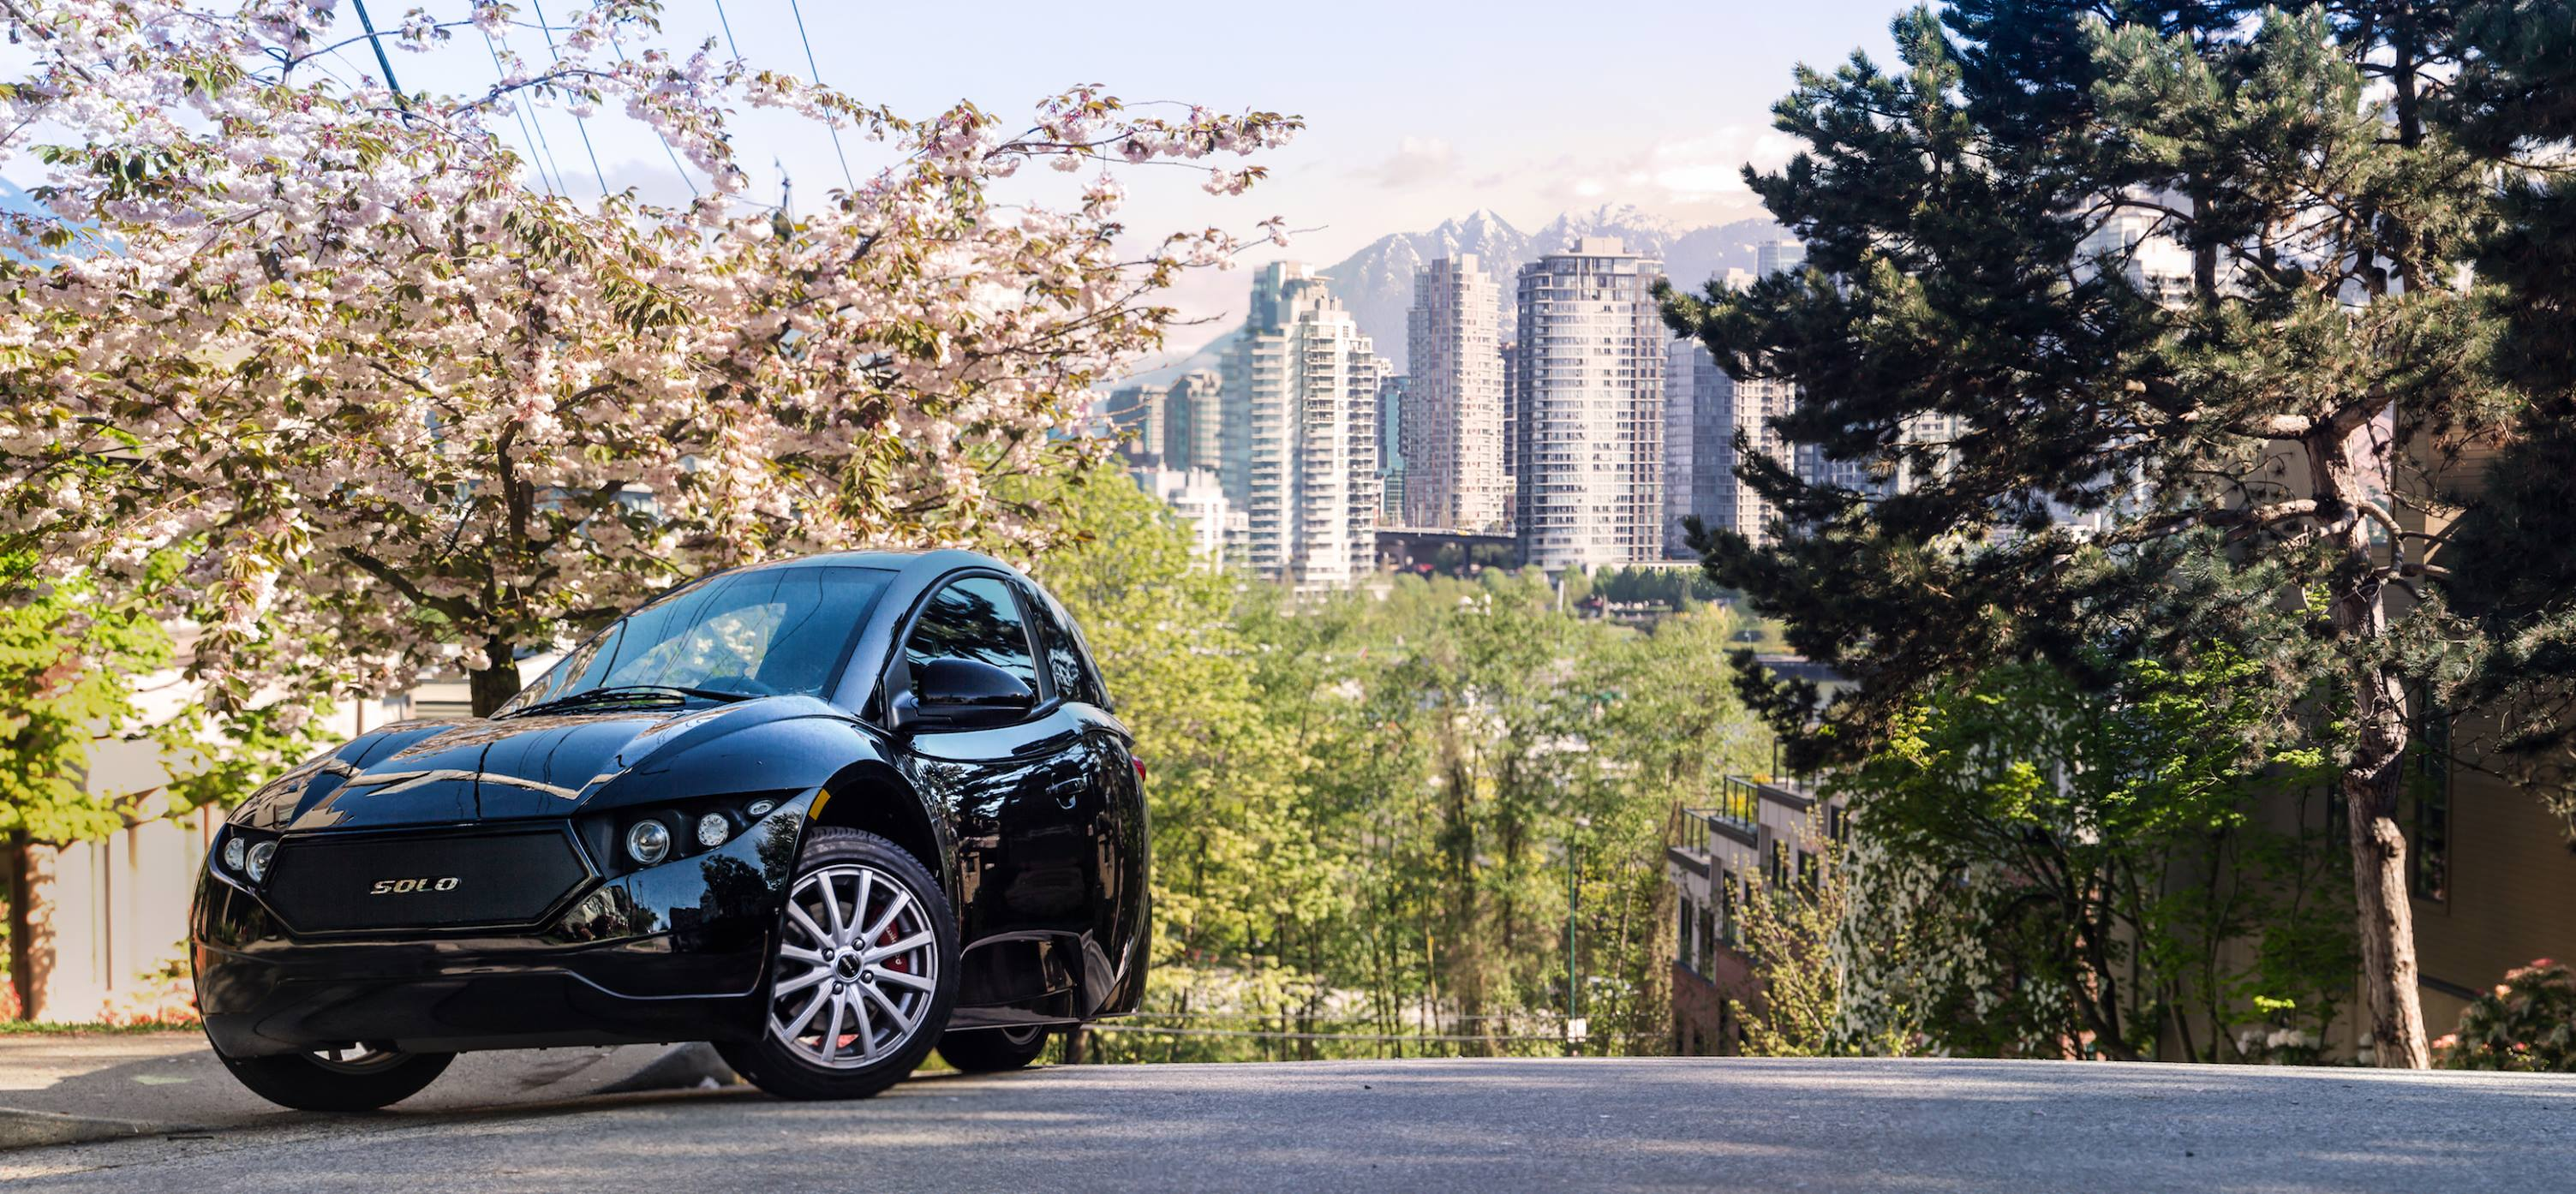 Electra Meccanica's SOLO to earn $2,500 rebate in Oregon, more than doubling its California rebate